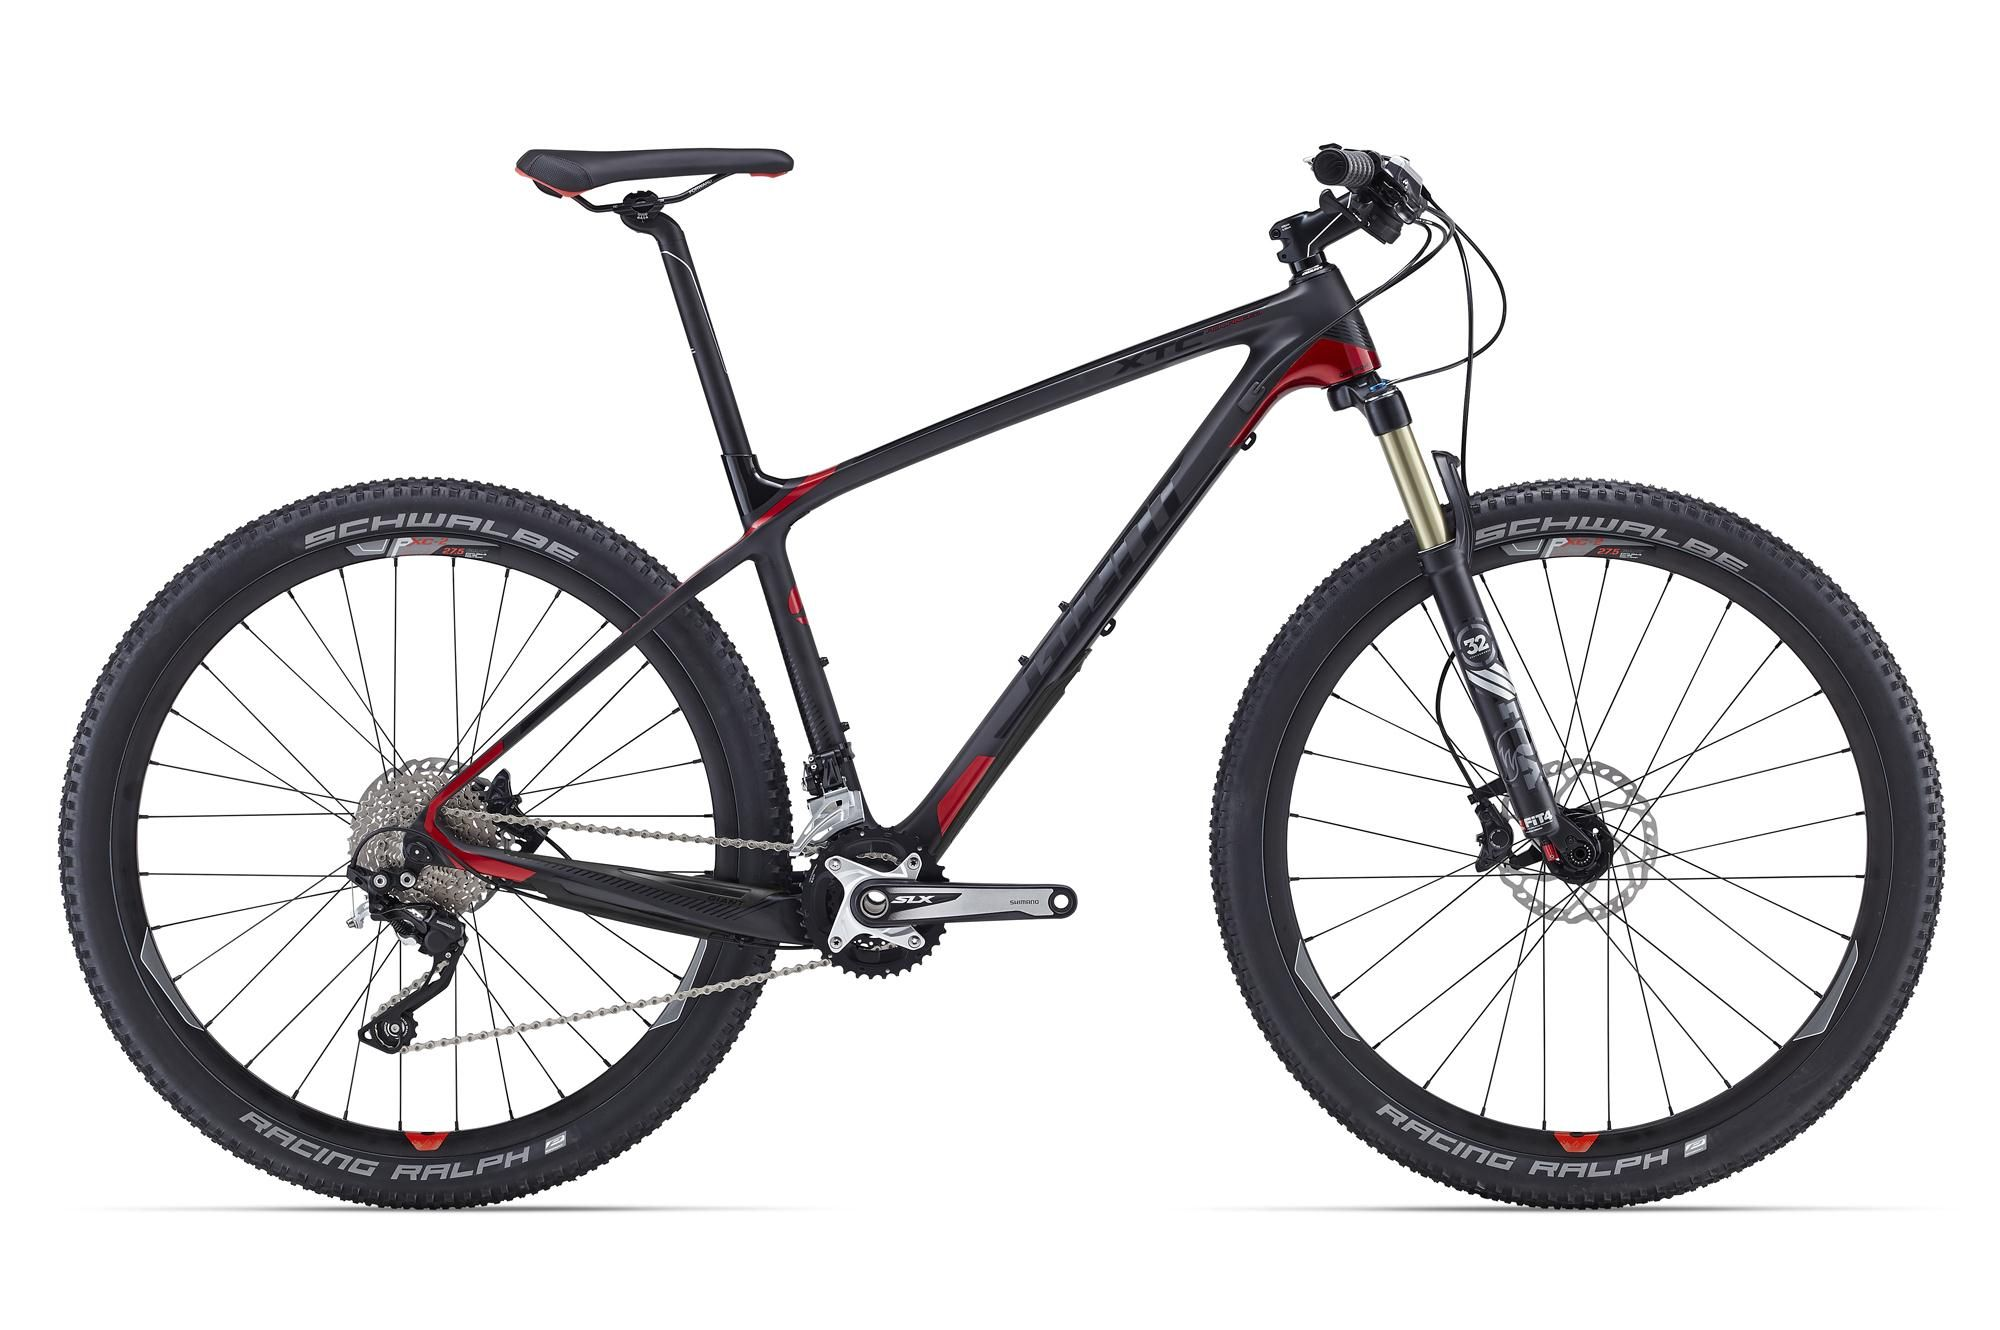 Велосипед Giant XtC Advanced 27.5 2 2016 велосипед giant tcr advanced sl 2 2017